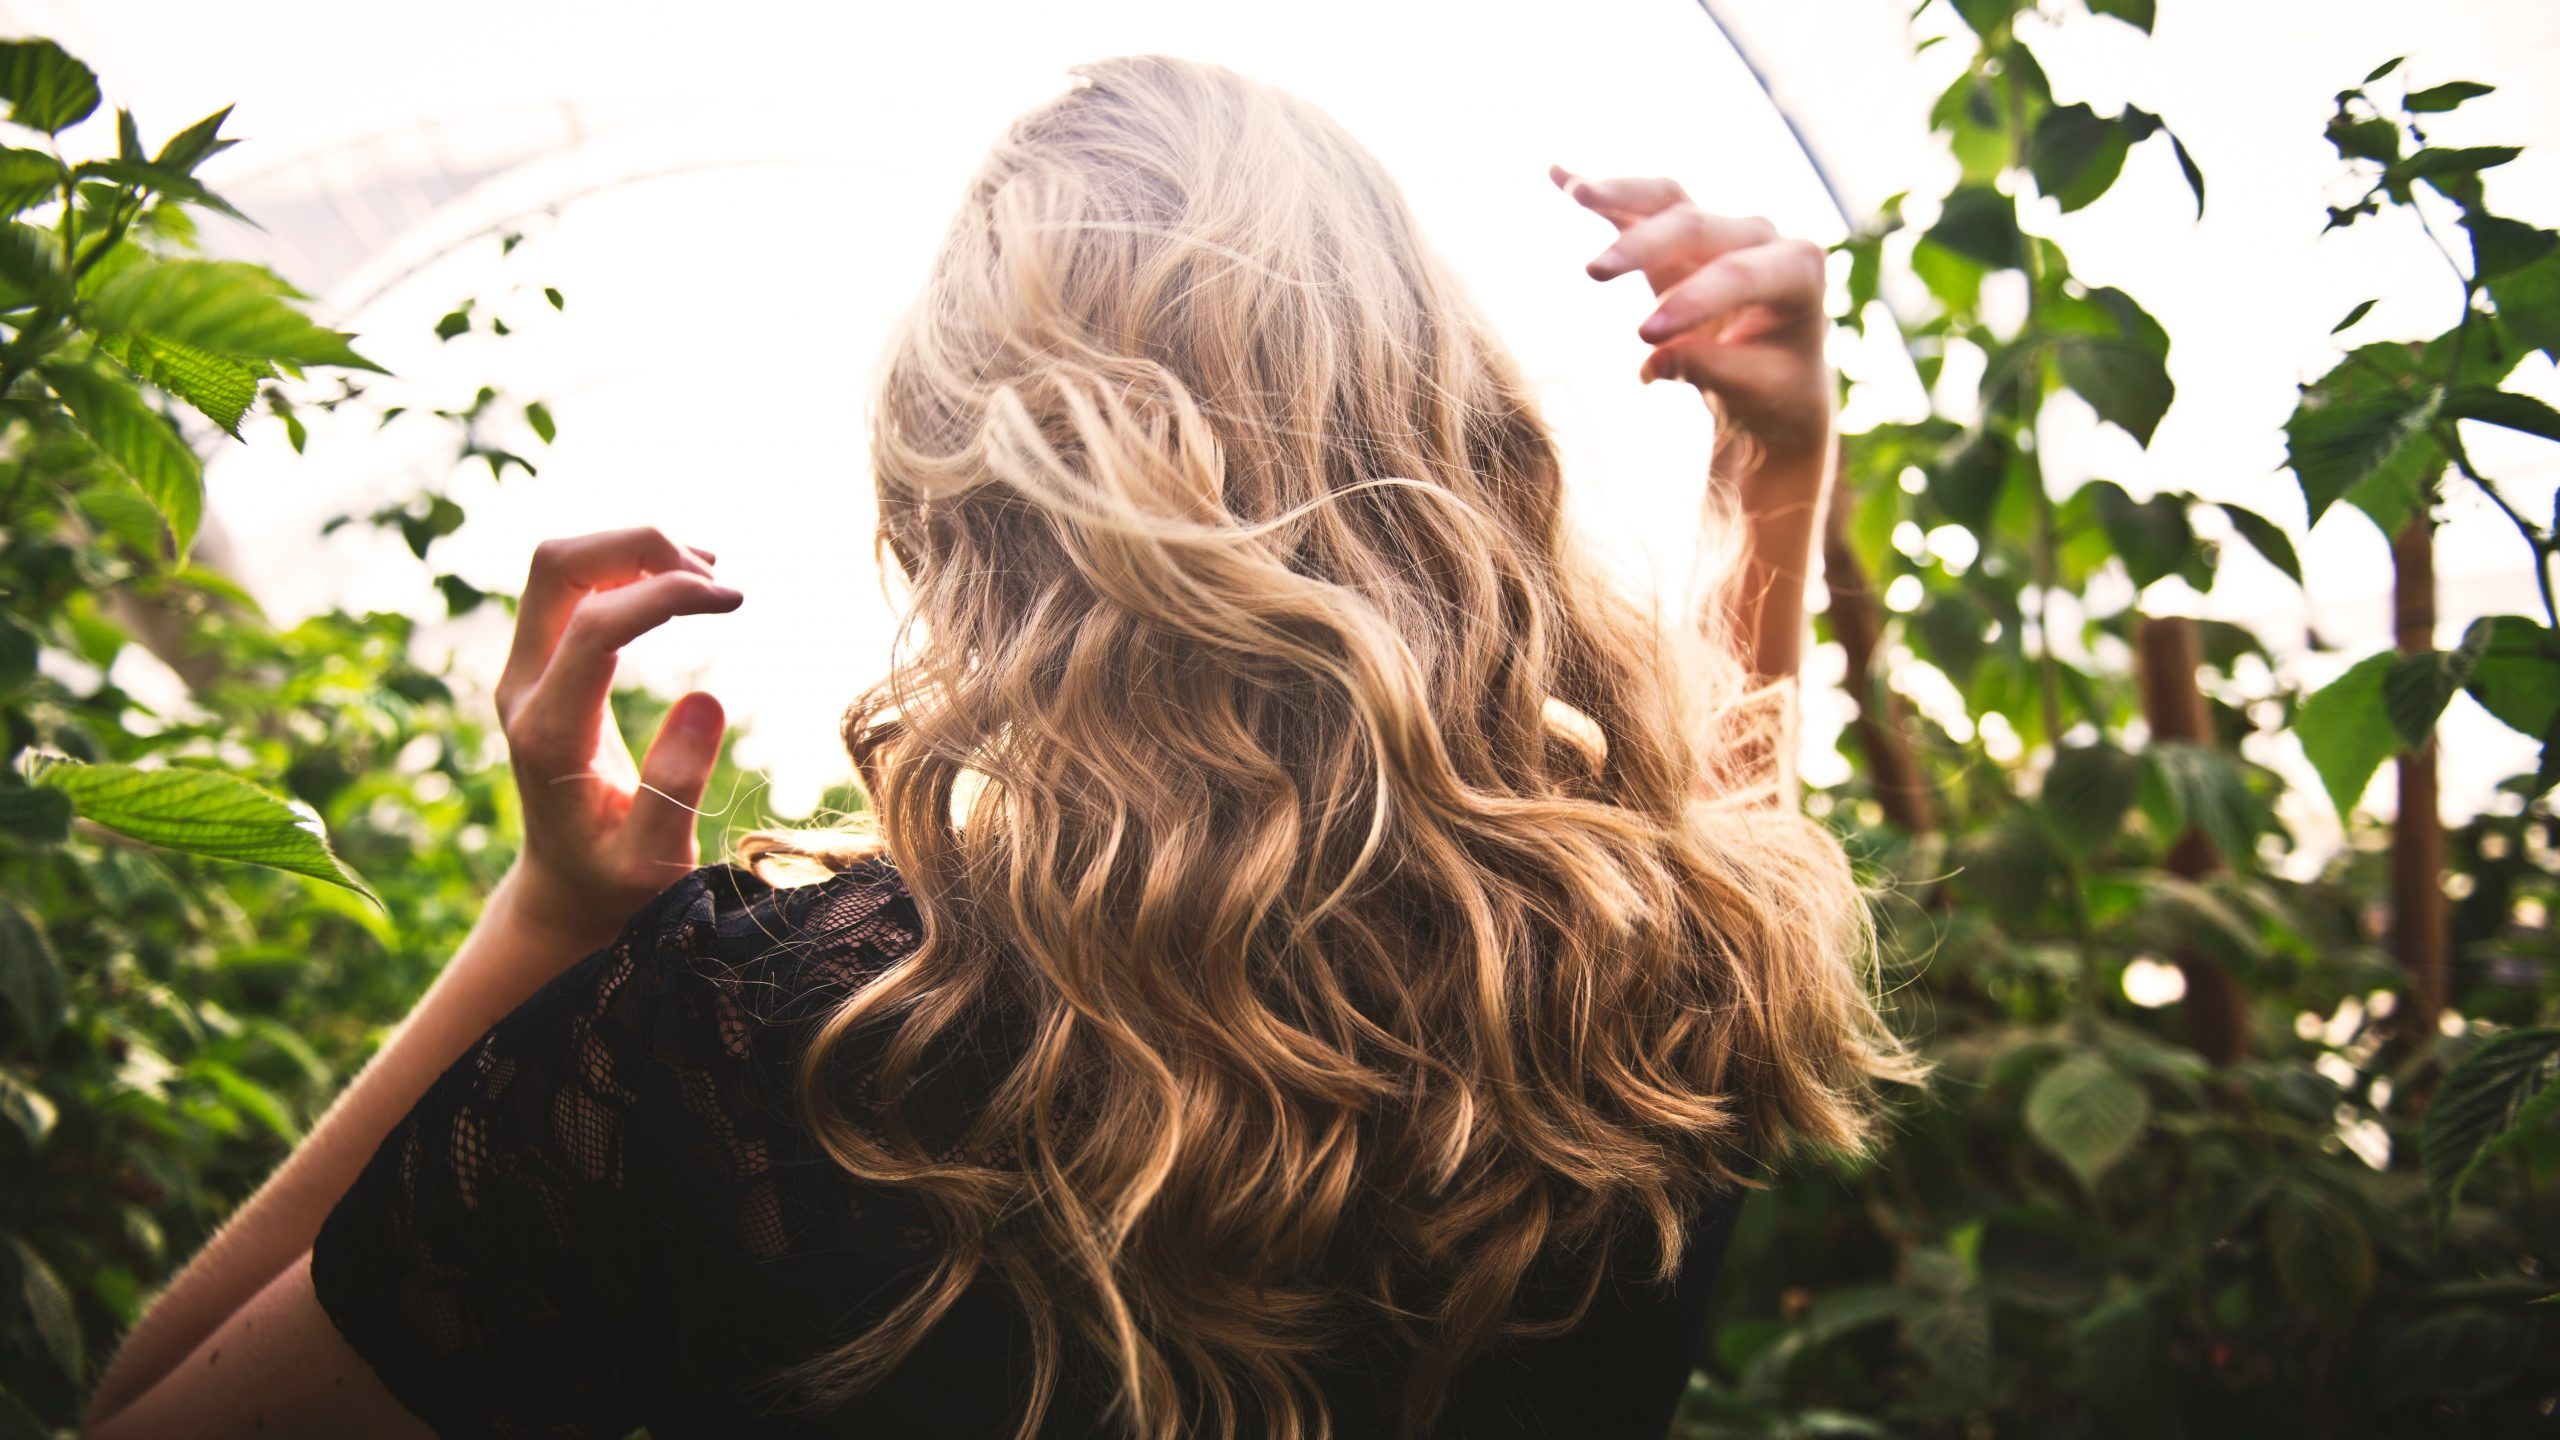 How to Repair Hair after Extensions